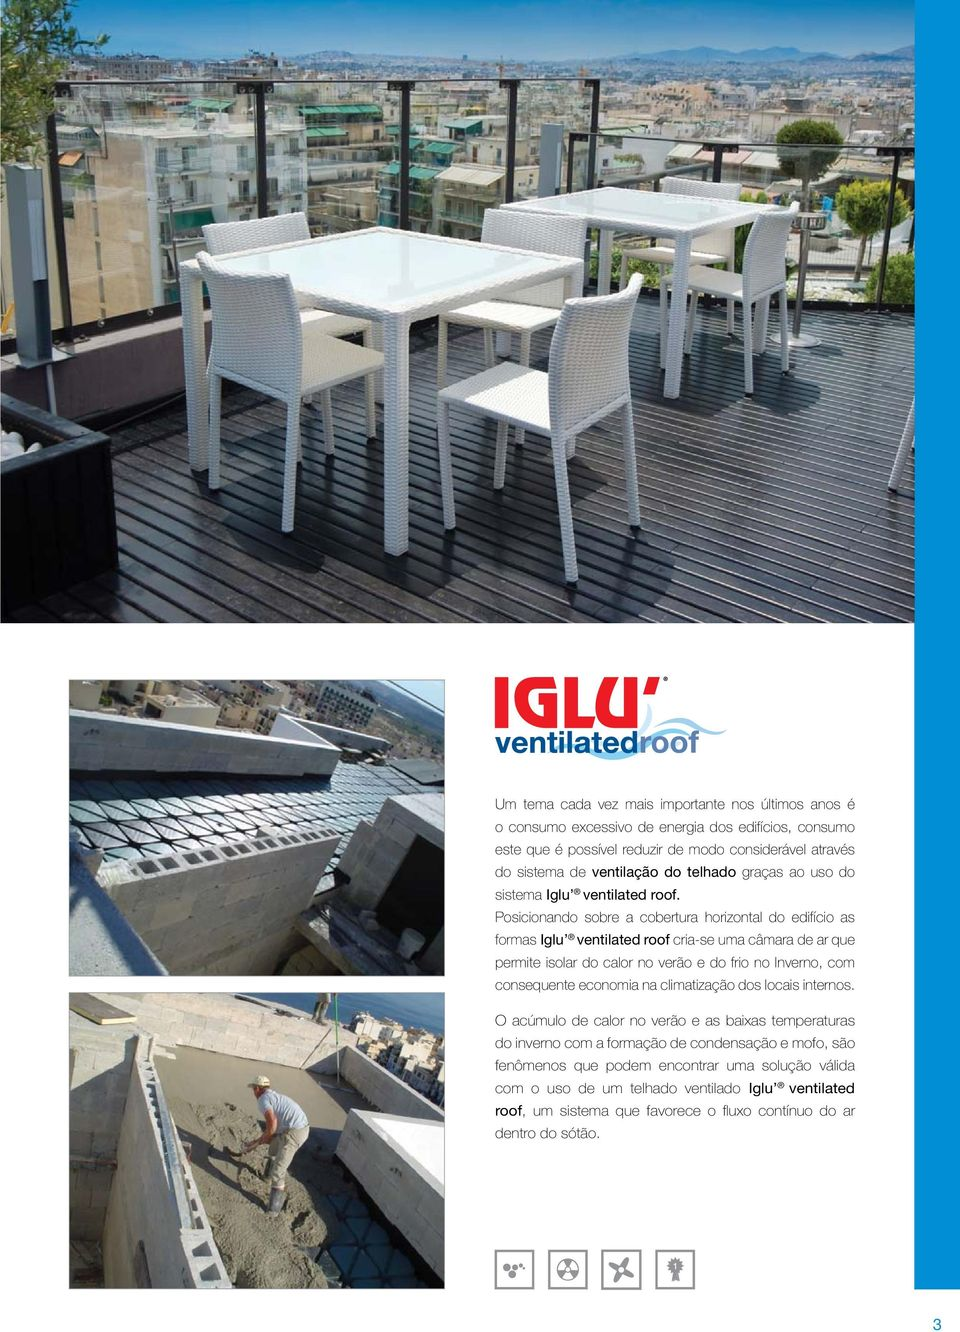 Posicionando sobre a cobertura horizontal do edifício as formas Iglu ventilated roof cria-se uma câmara de ar que permite isolar do calor no verão e do frio no Inverno, com consequente